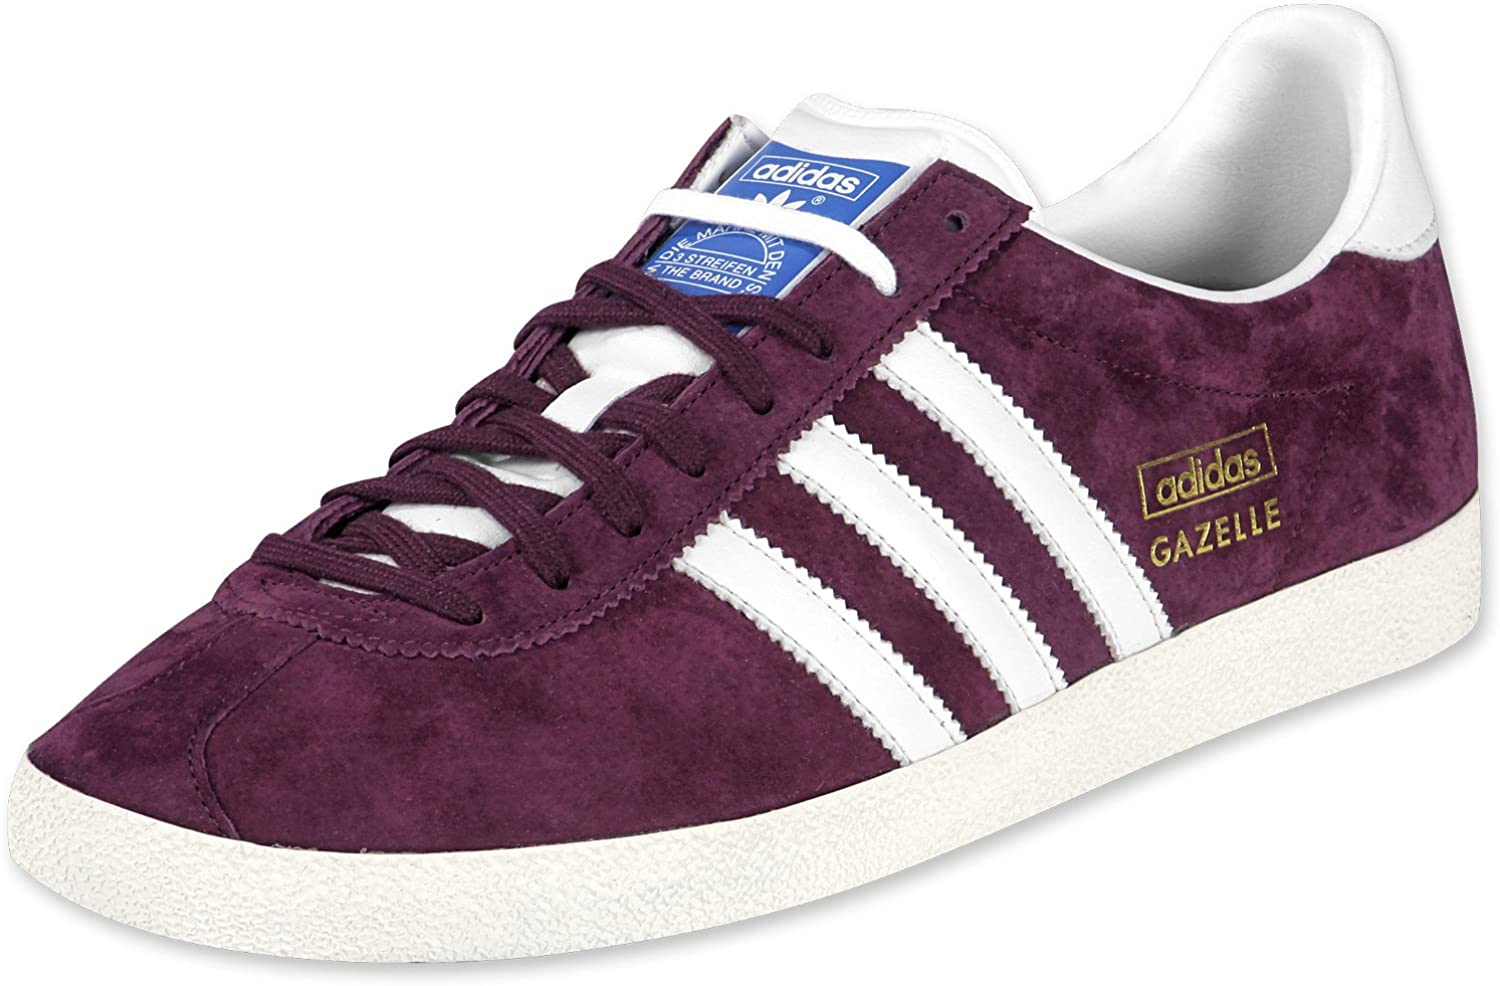 número Discurso huella dactilar  adidas Gazelle, Maroon/White Uk Size: 9: Amazon.co.uk: Shoes & Bags